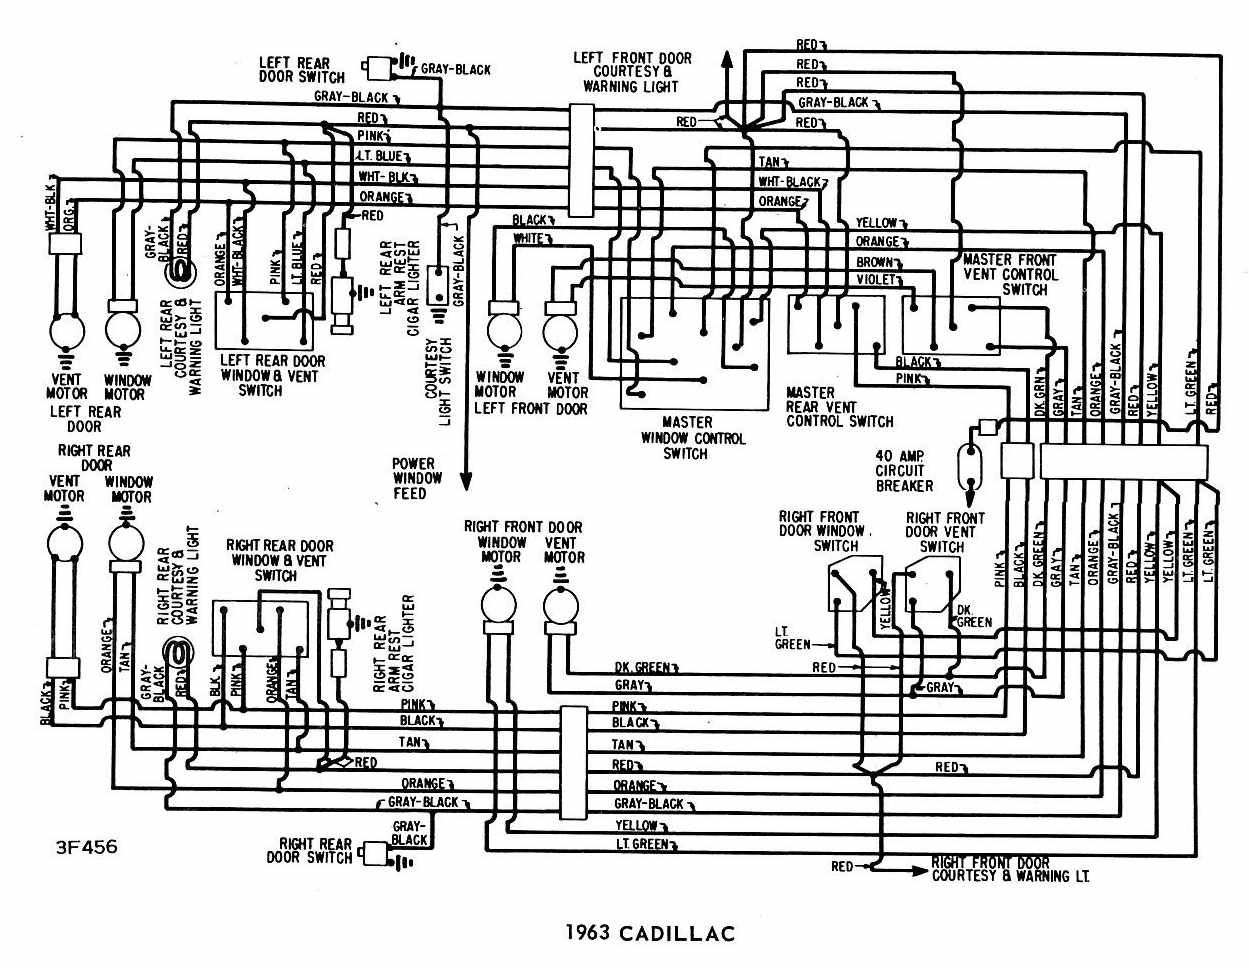 medium resolution of 1962 cadillac wiring diagram wiring diagram name 1961 cadillac wiring diagram